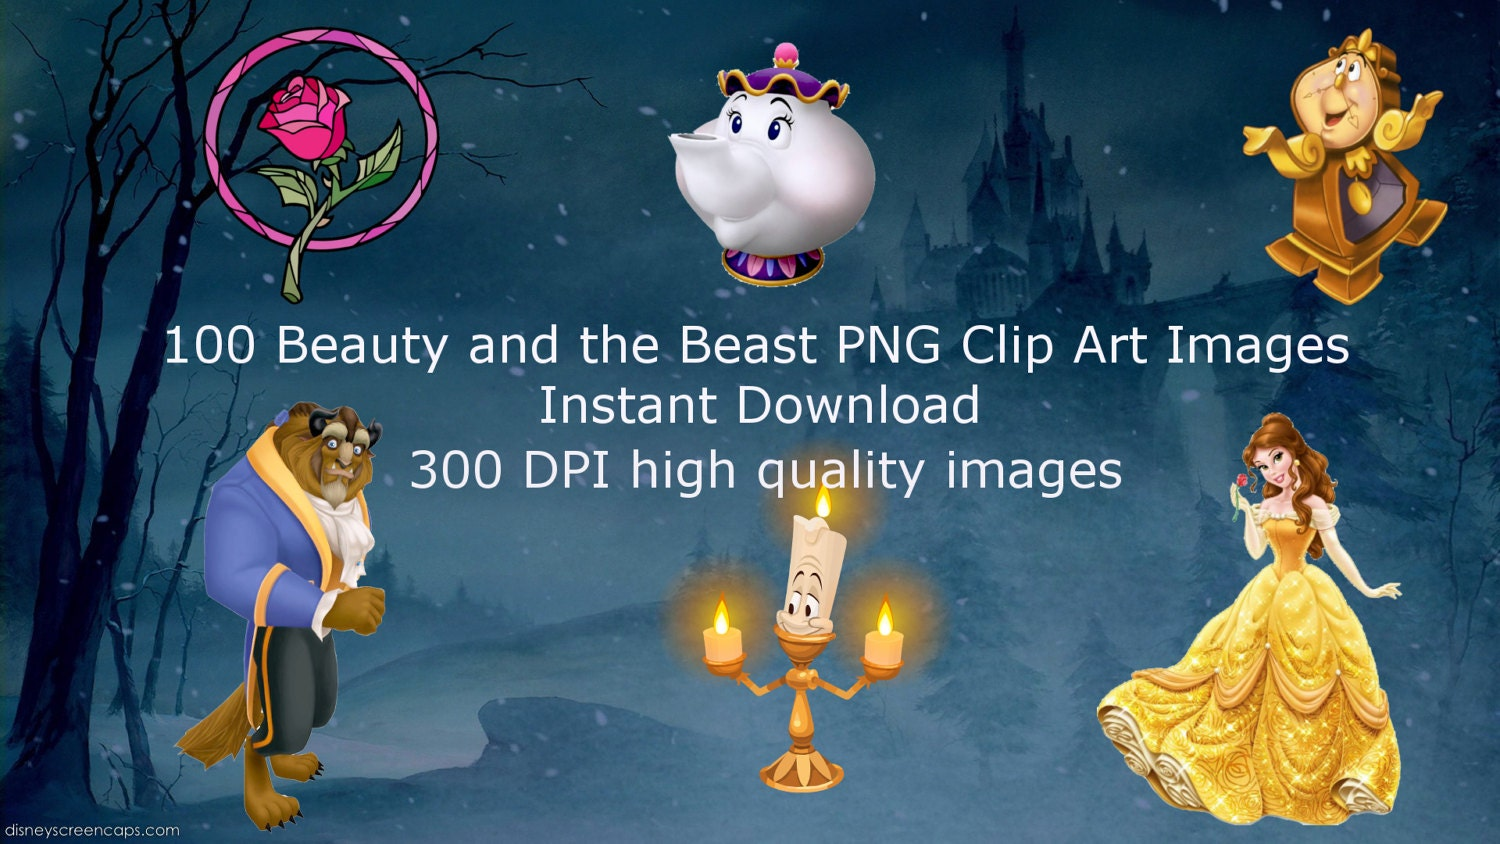 Download Beauty And Beast: 100 Beauty And The Beast PNG Clip Art, Instant Download